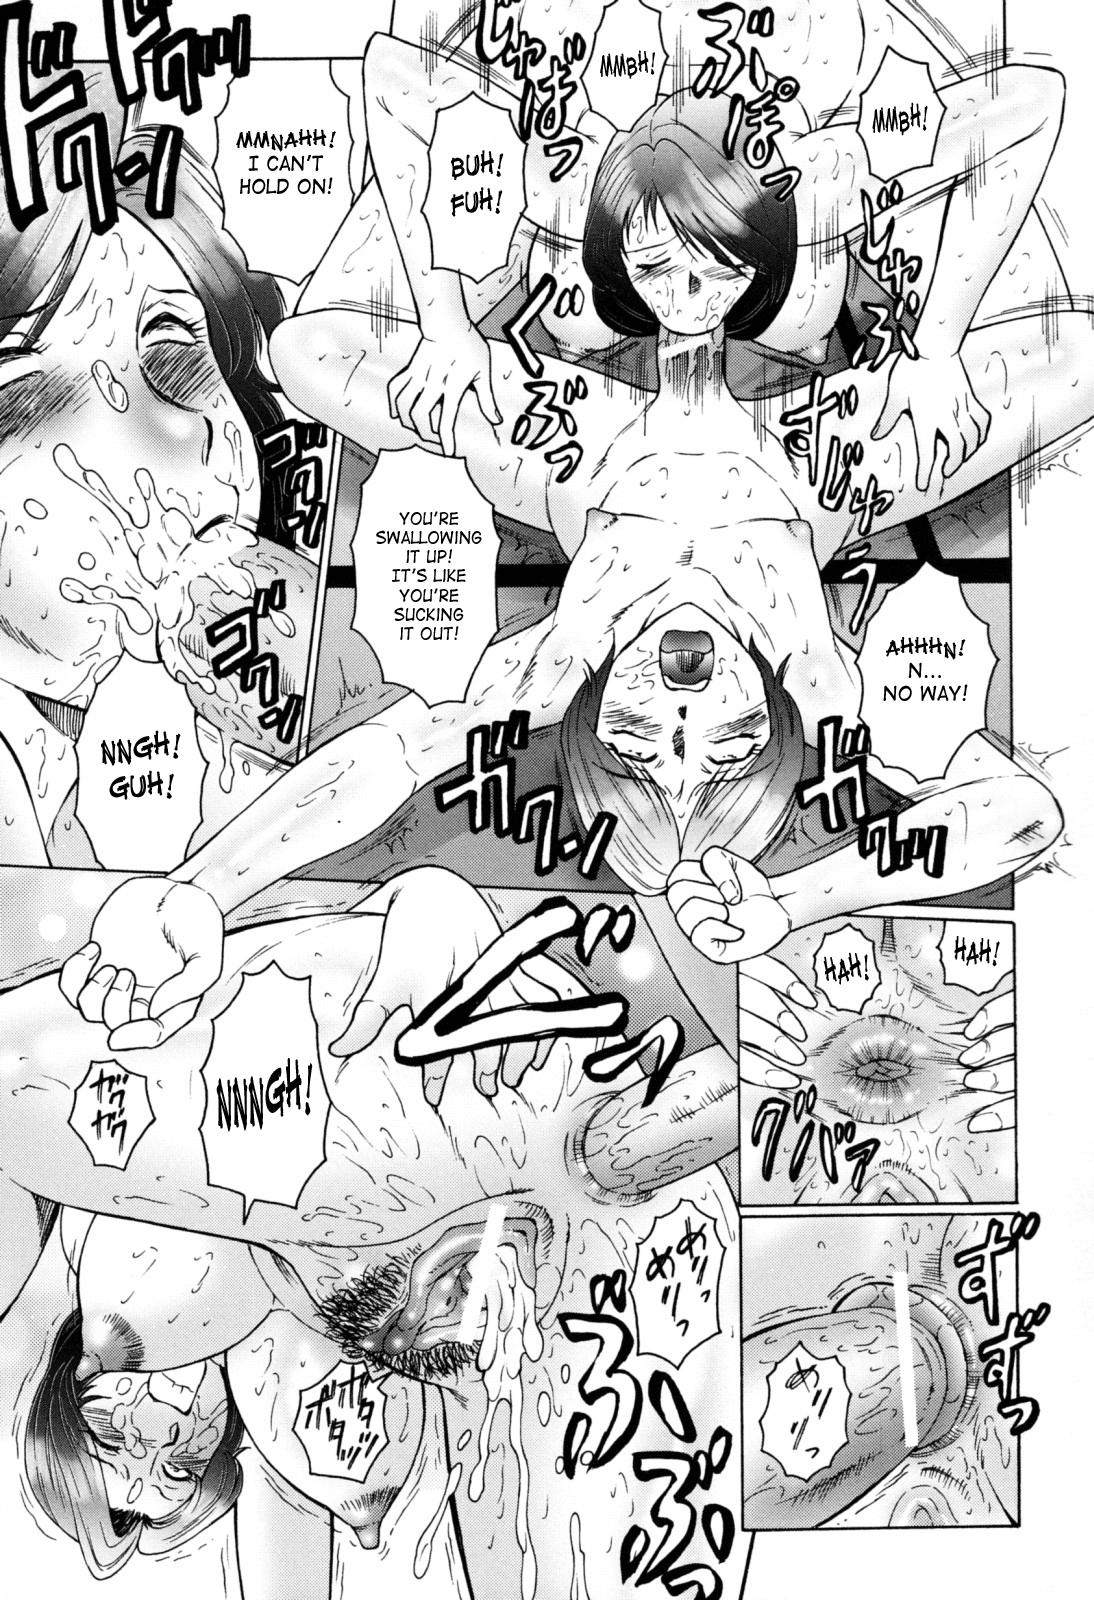 [Fuusen Club] Boshino Toriko - The Captive of Mother and the Son | Enslaved Mother and Son Ch. 1-5 [English] [SaHa] 96